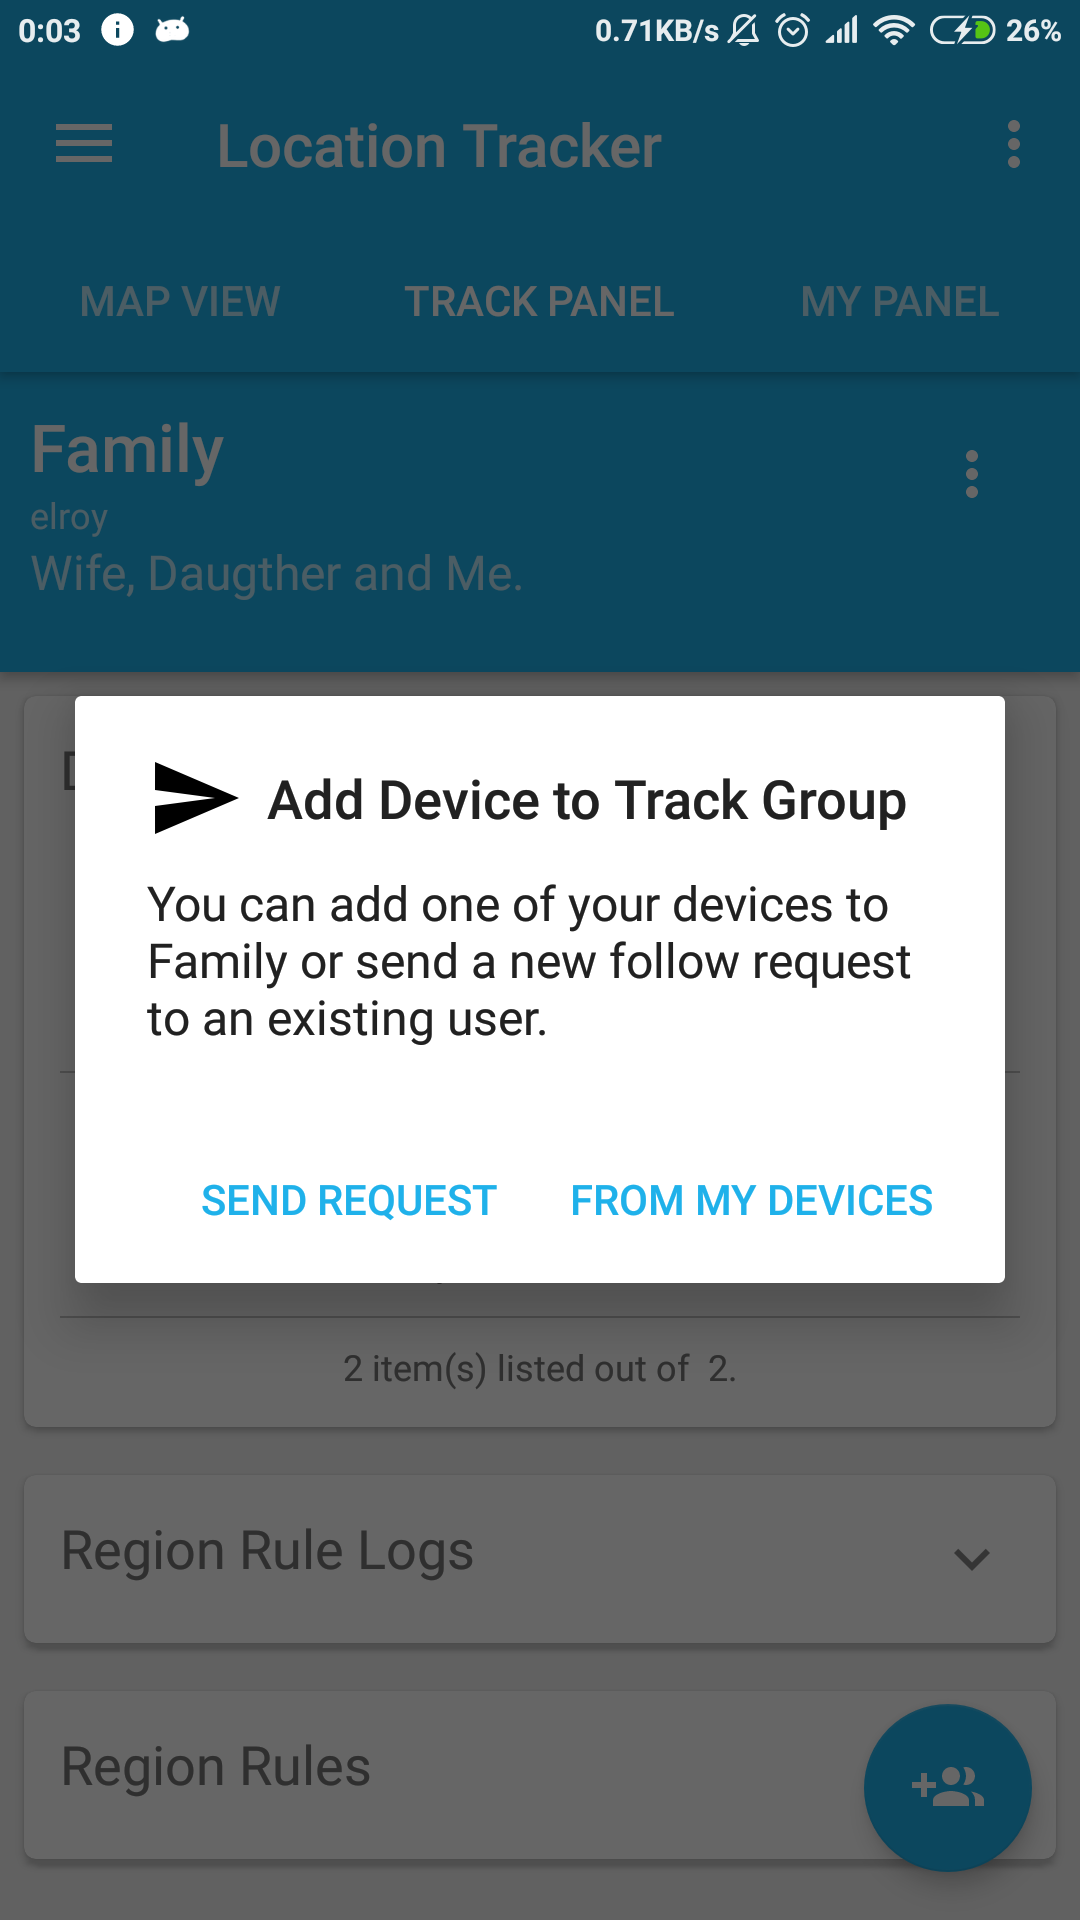 Location Tracker - Add Device to Track Group